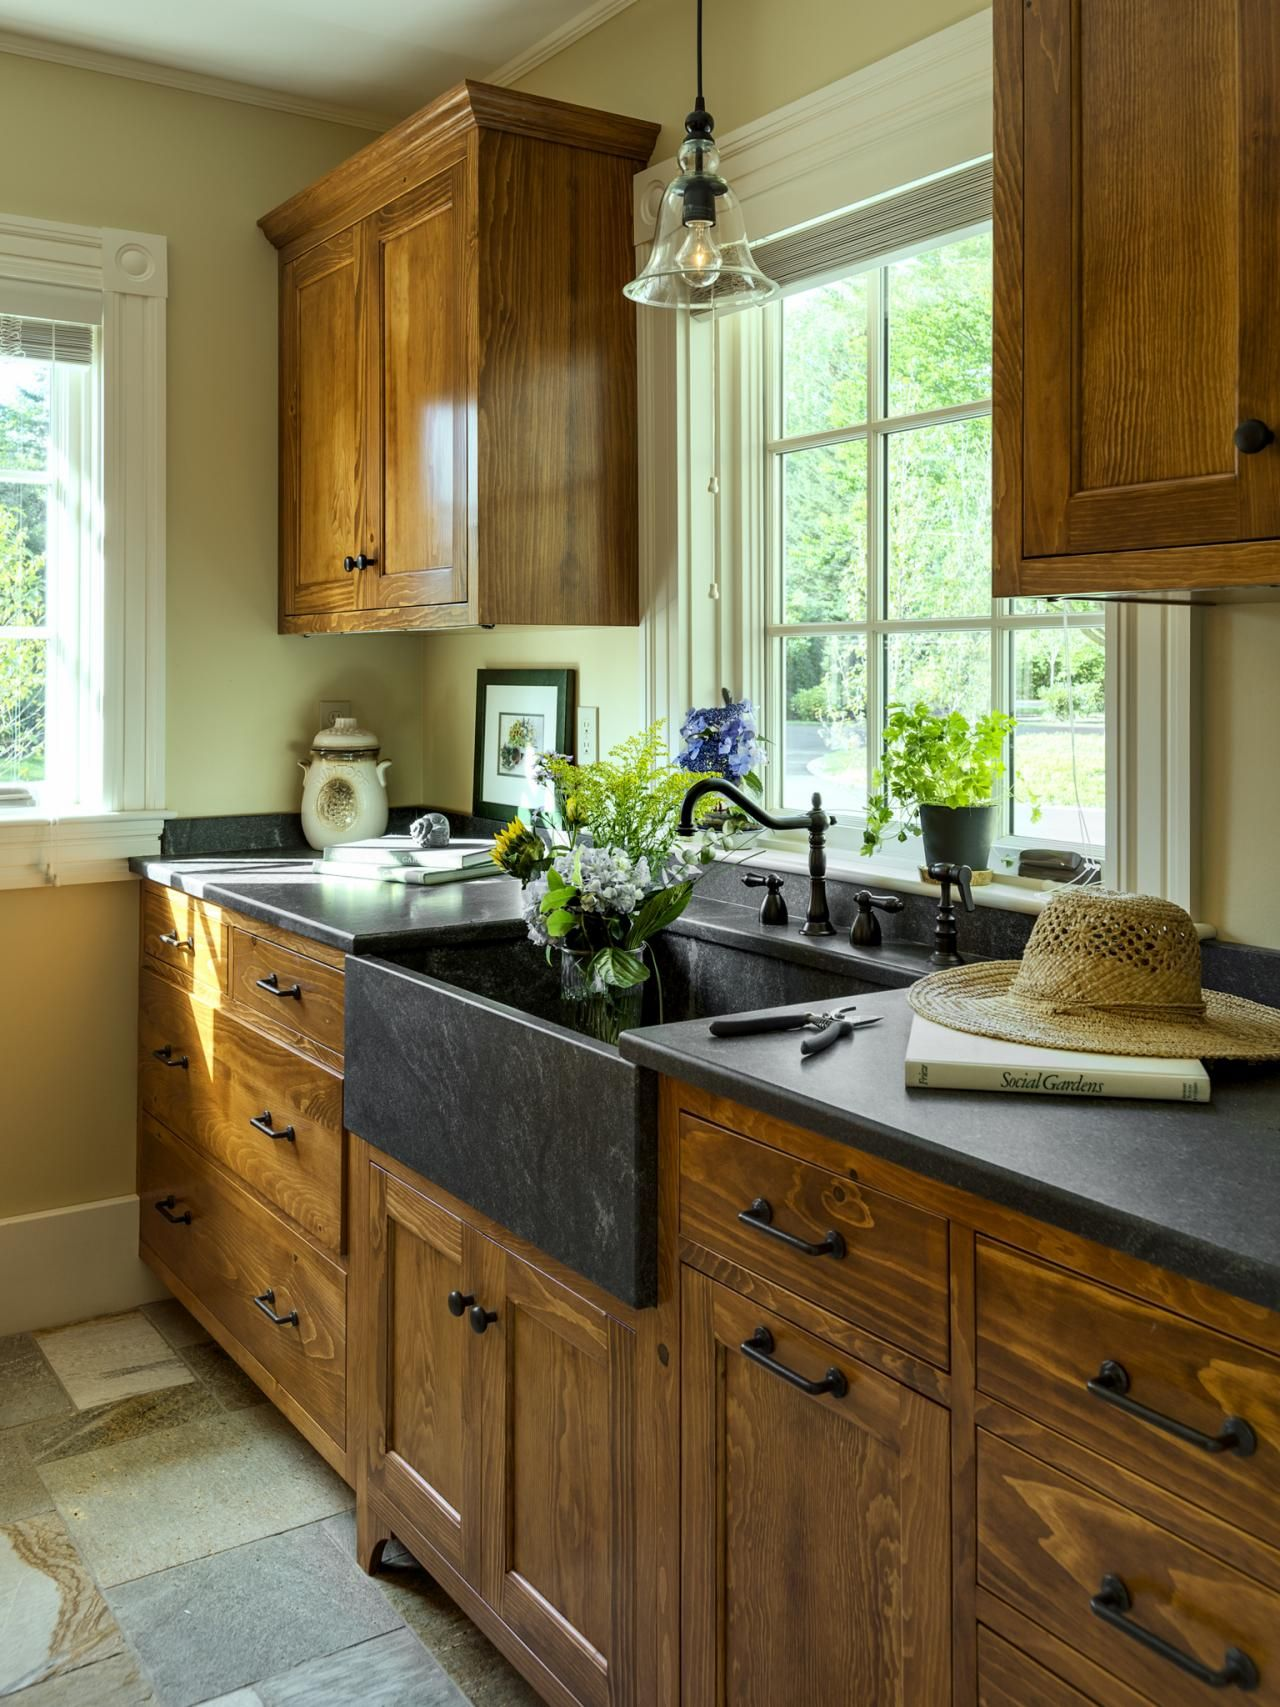 Top 50 pinterest gallery 2014 hgtv sinks and kitchens for Darken kitchen cabinets